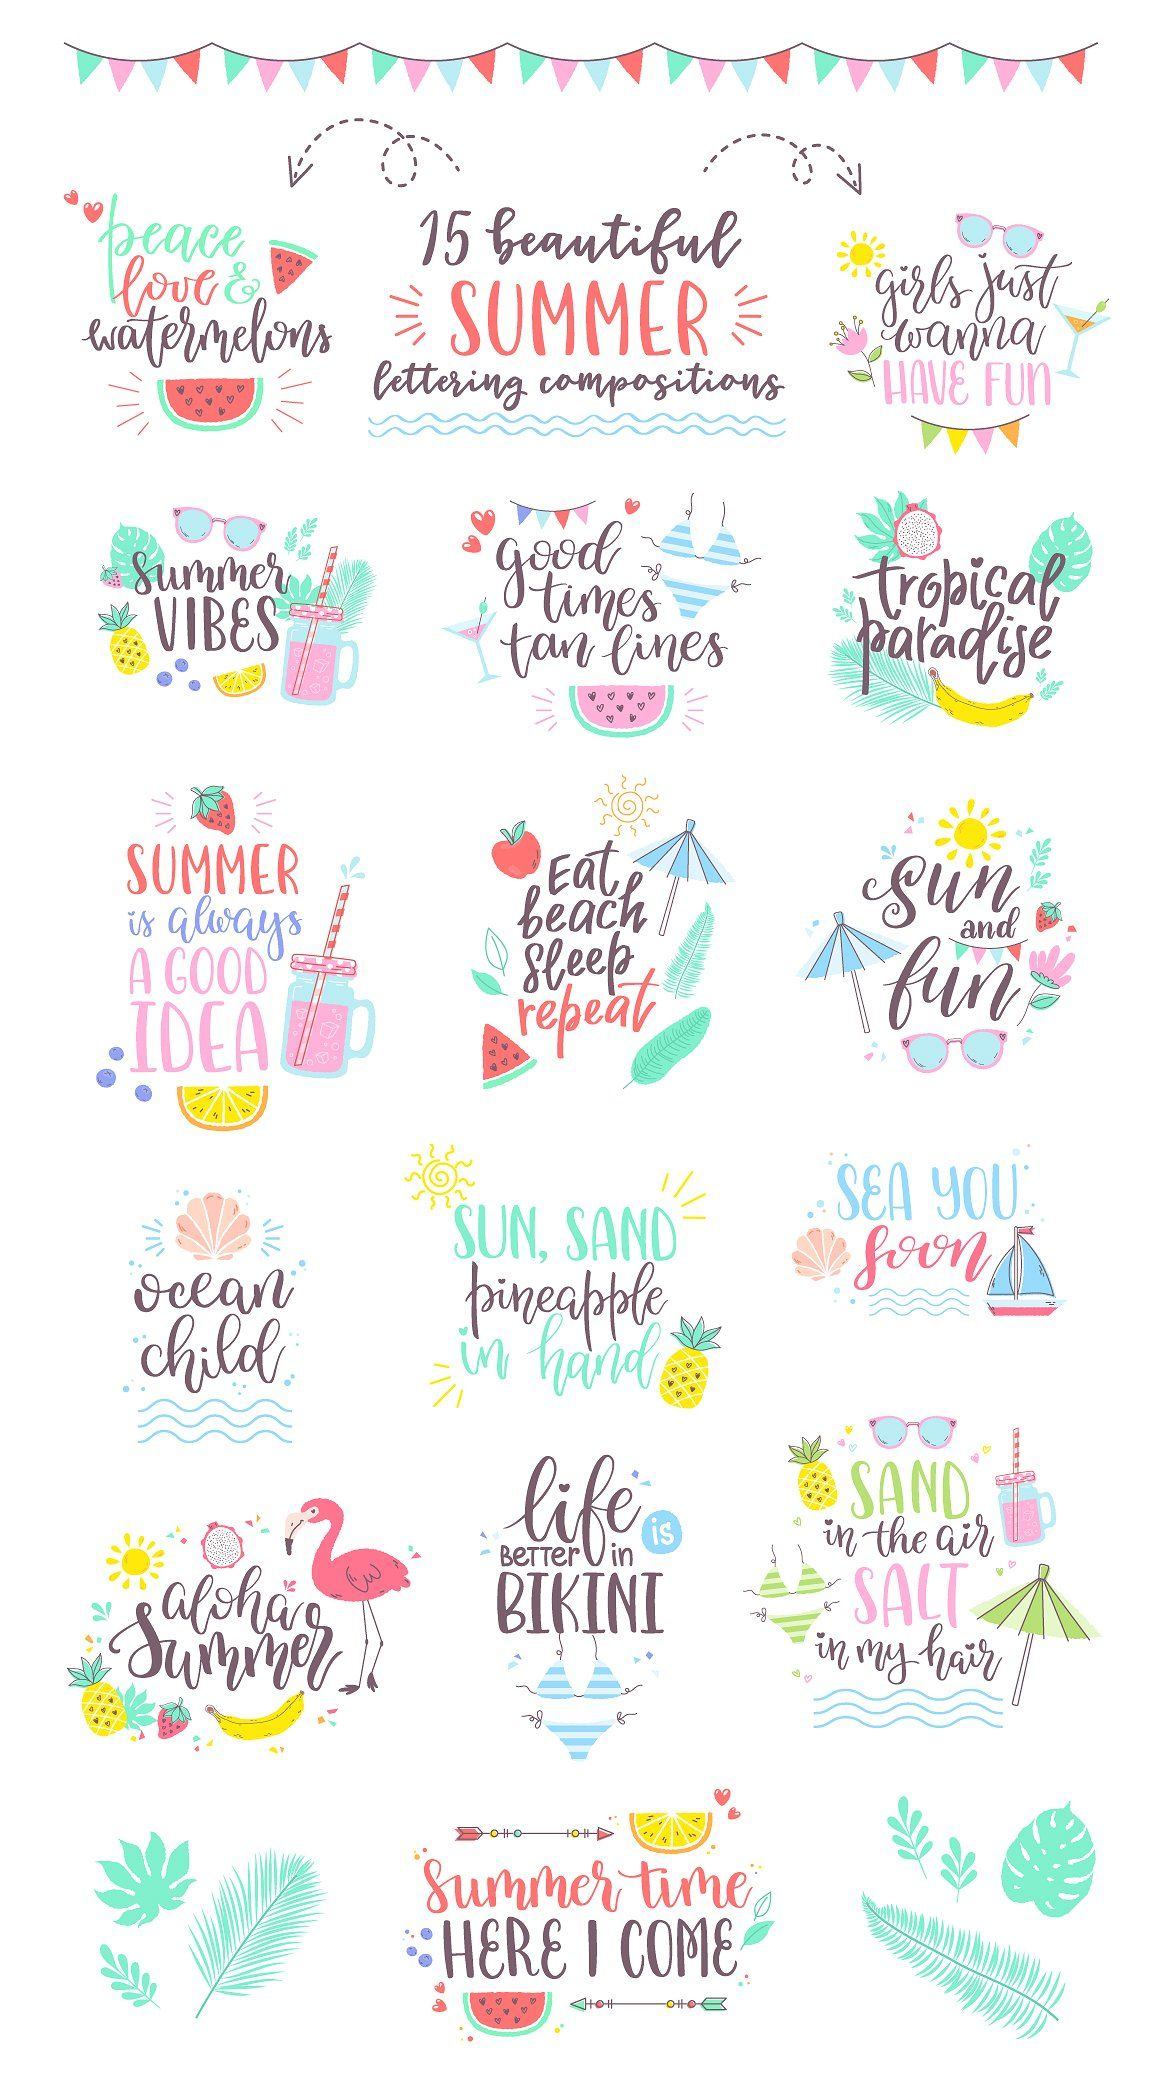 Summer Vibes Design Pack Hand Lettering Summer Vibes Friends Vibes